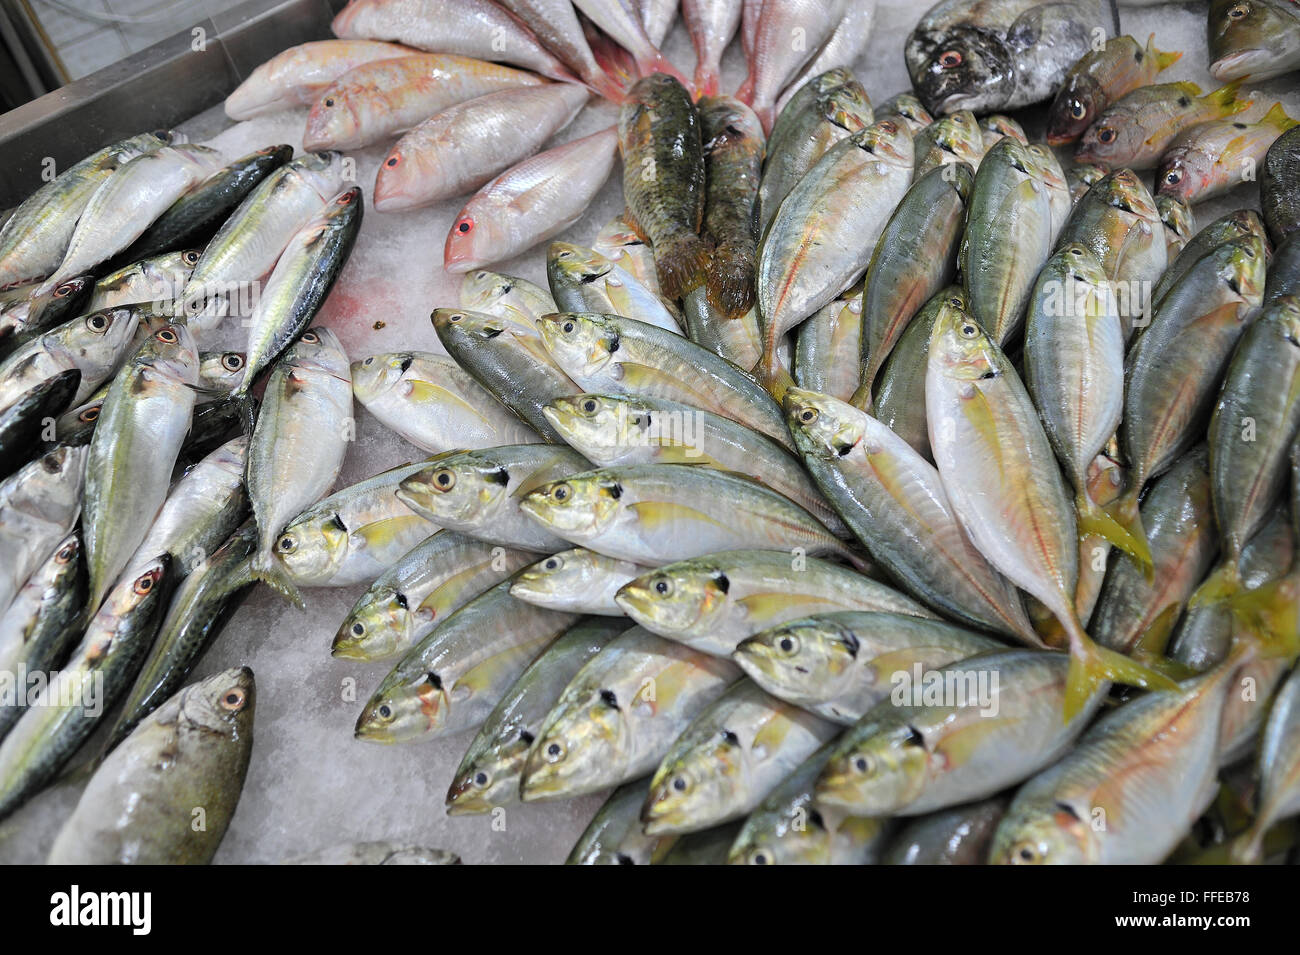 Fresh fish for sale in metro gaisano supermarket ayala for Stock fish for sale